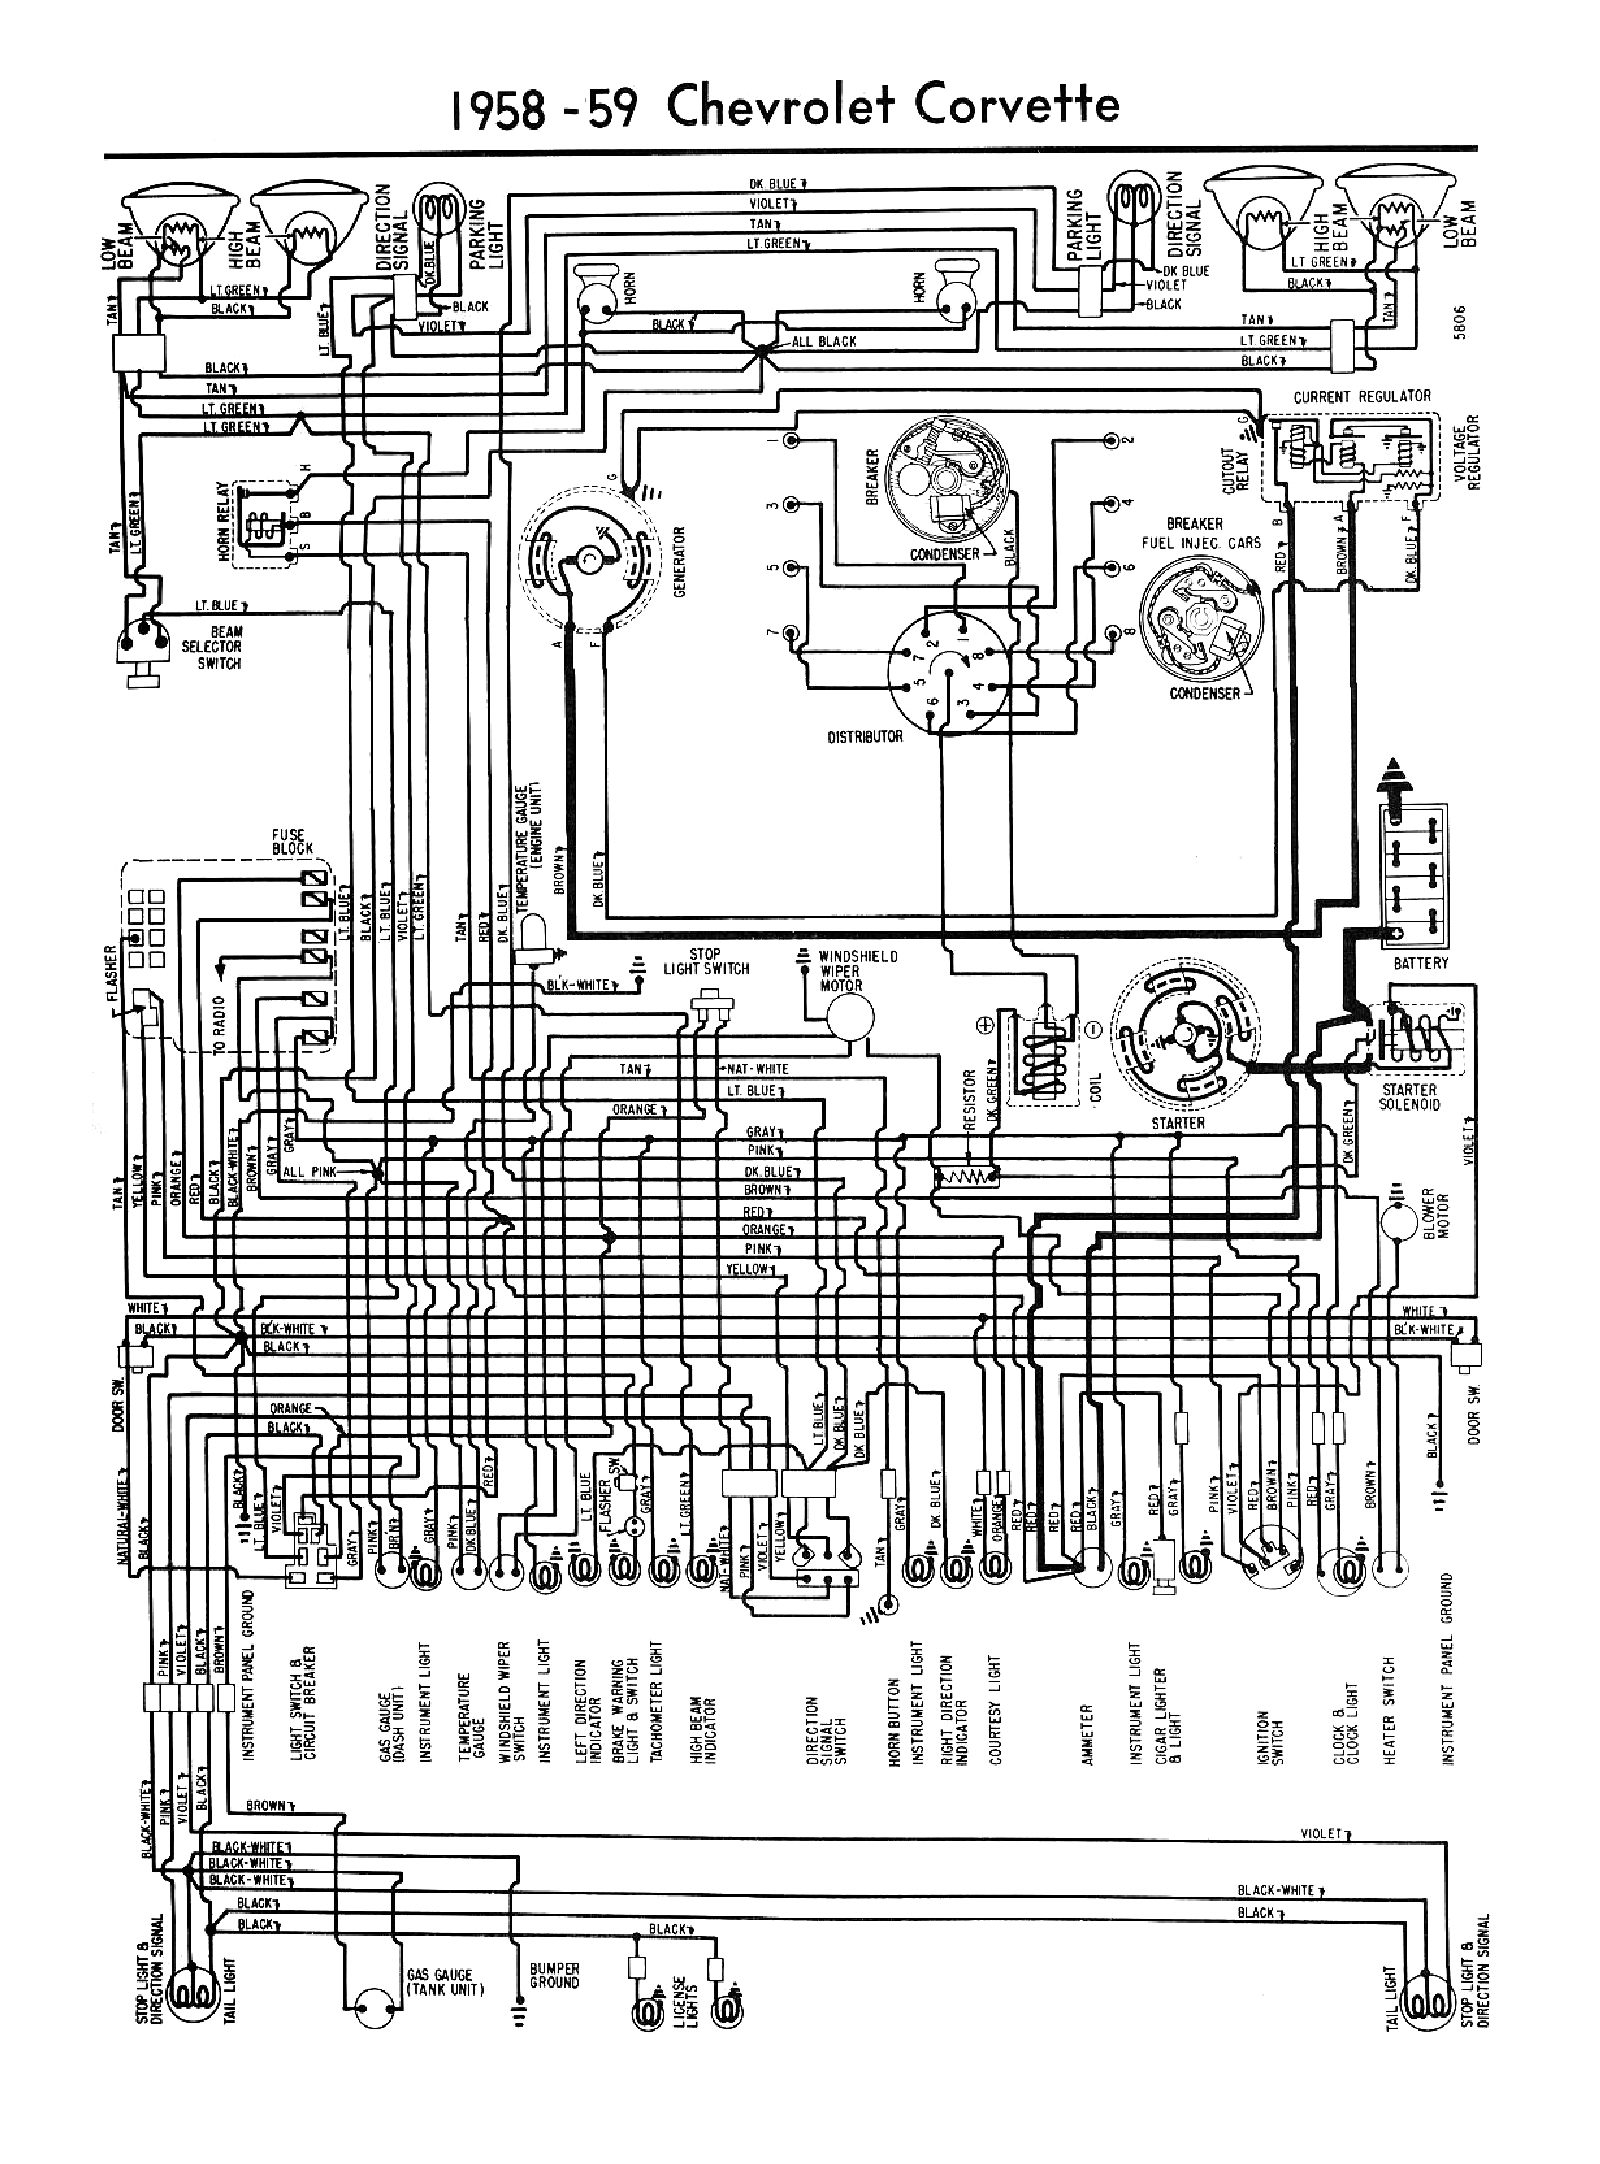 1955 corvette wiring diagram example electrical wiring diagram u2022 rh cranejapan co 1956 Chevy Wiring Harness Diagram 1955 Chevy Pickup Radio Wiring Diagram